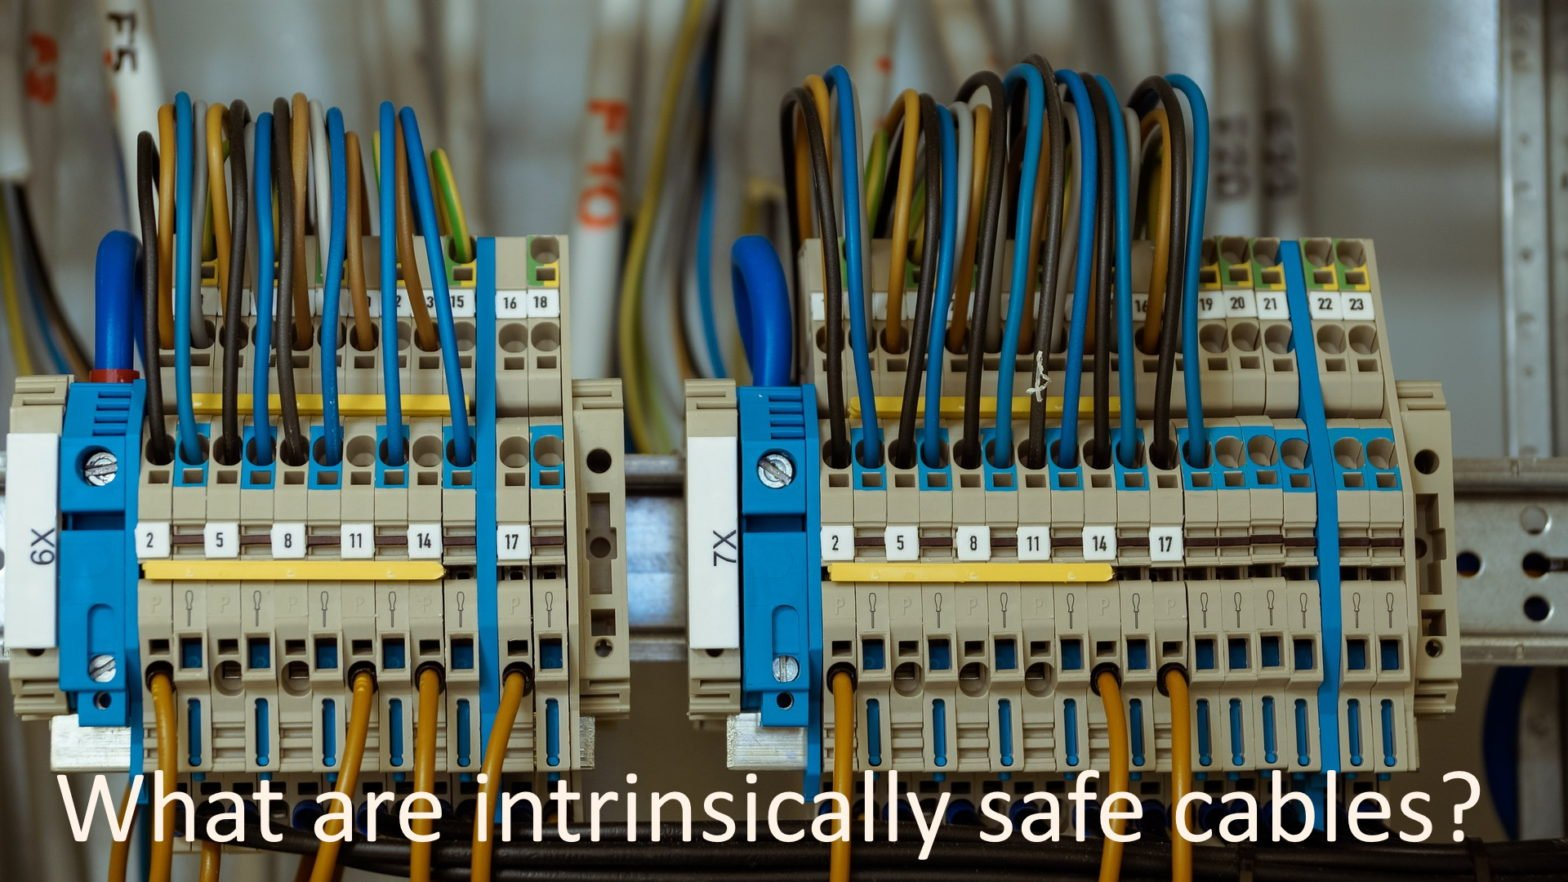 Intrinsically safe cable